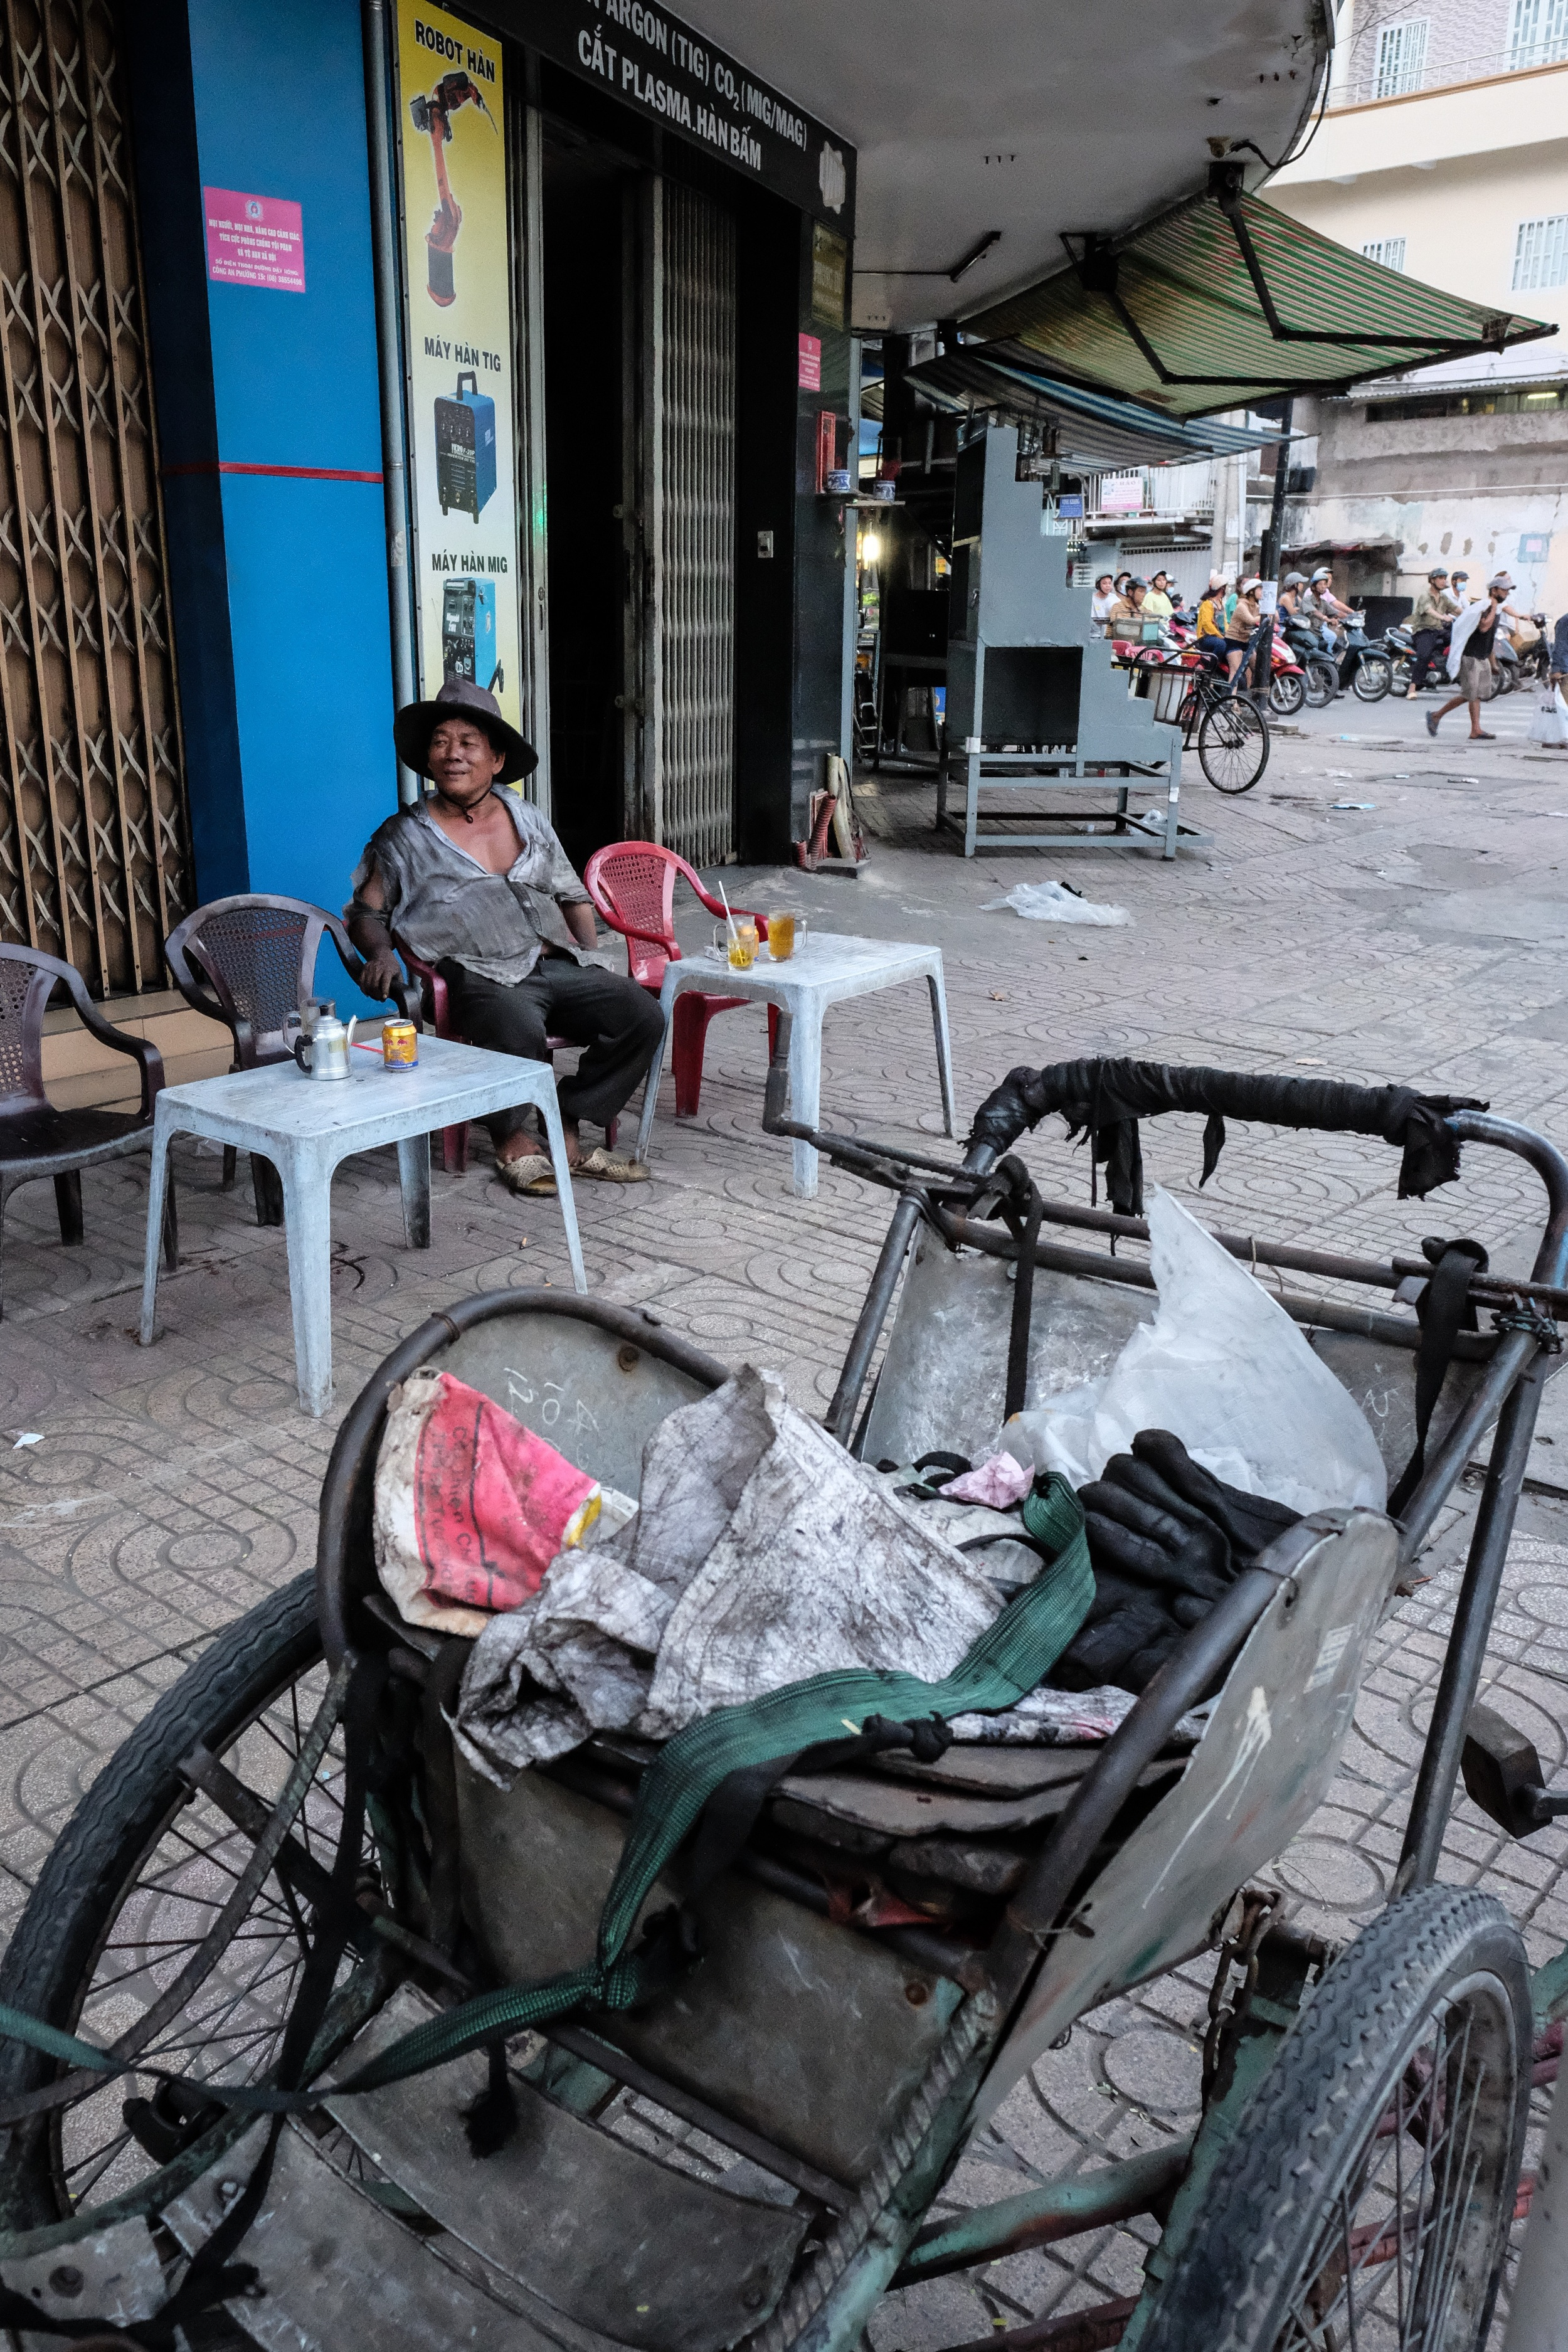 A cyclo driver enjoying a break and a cold beer.